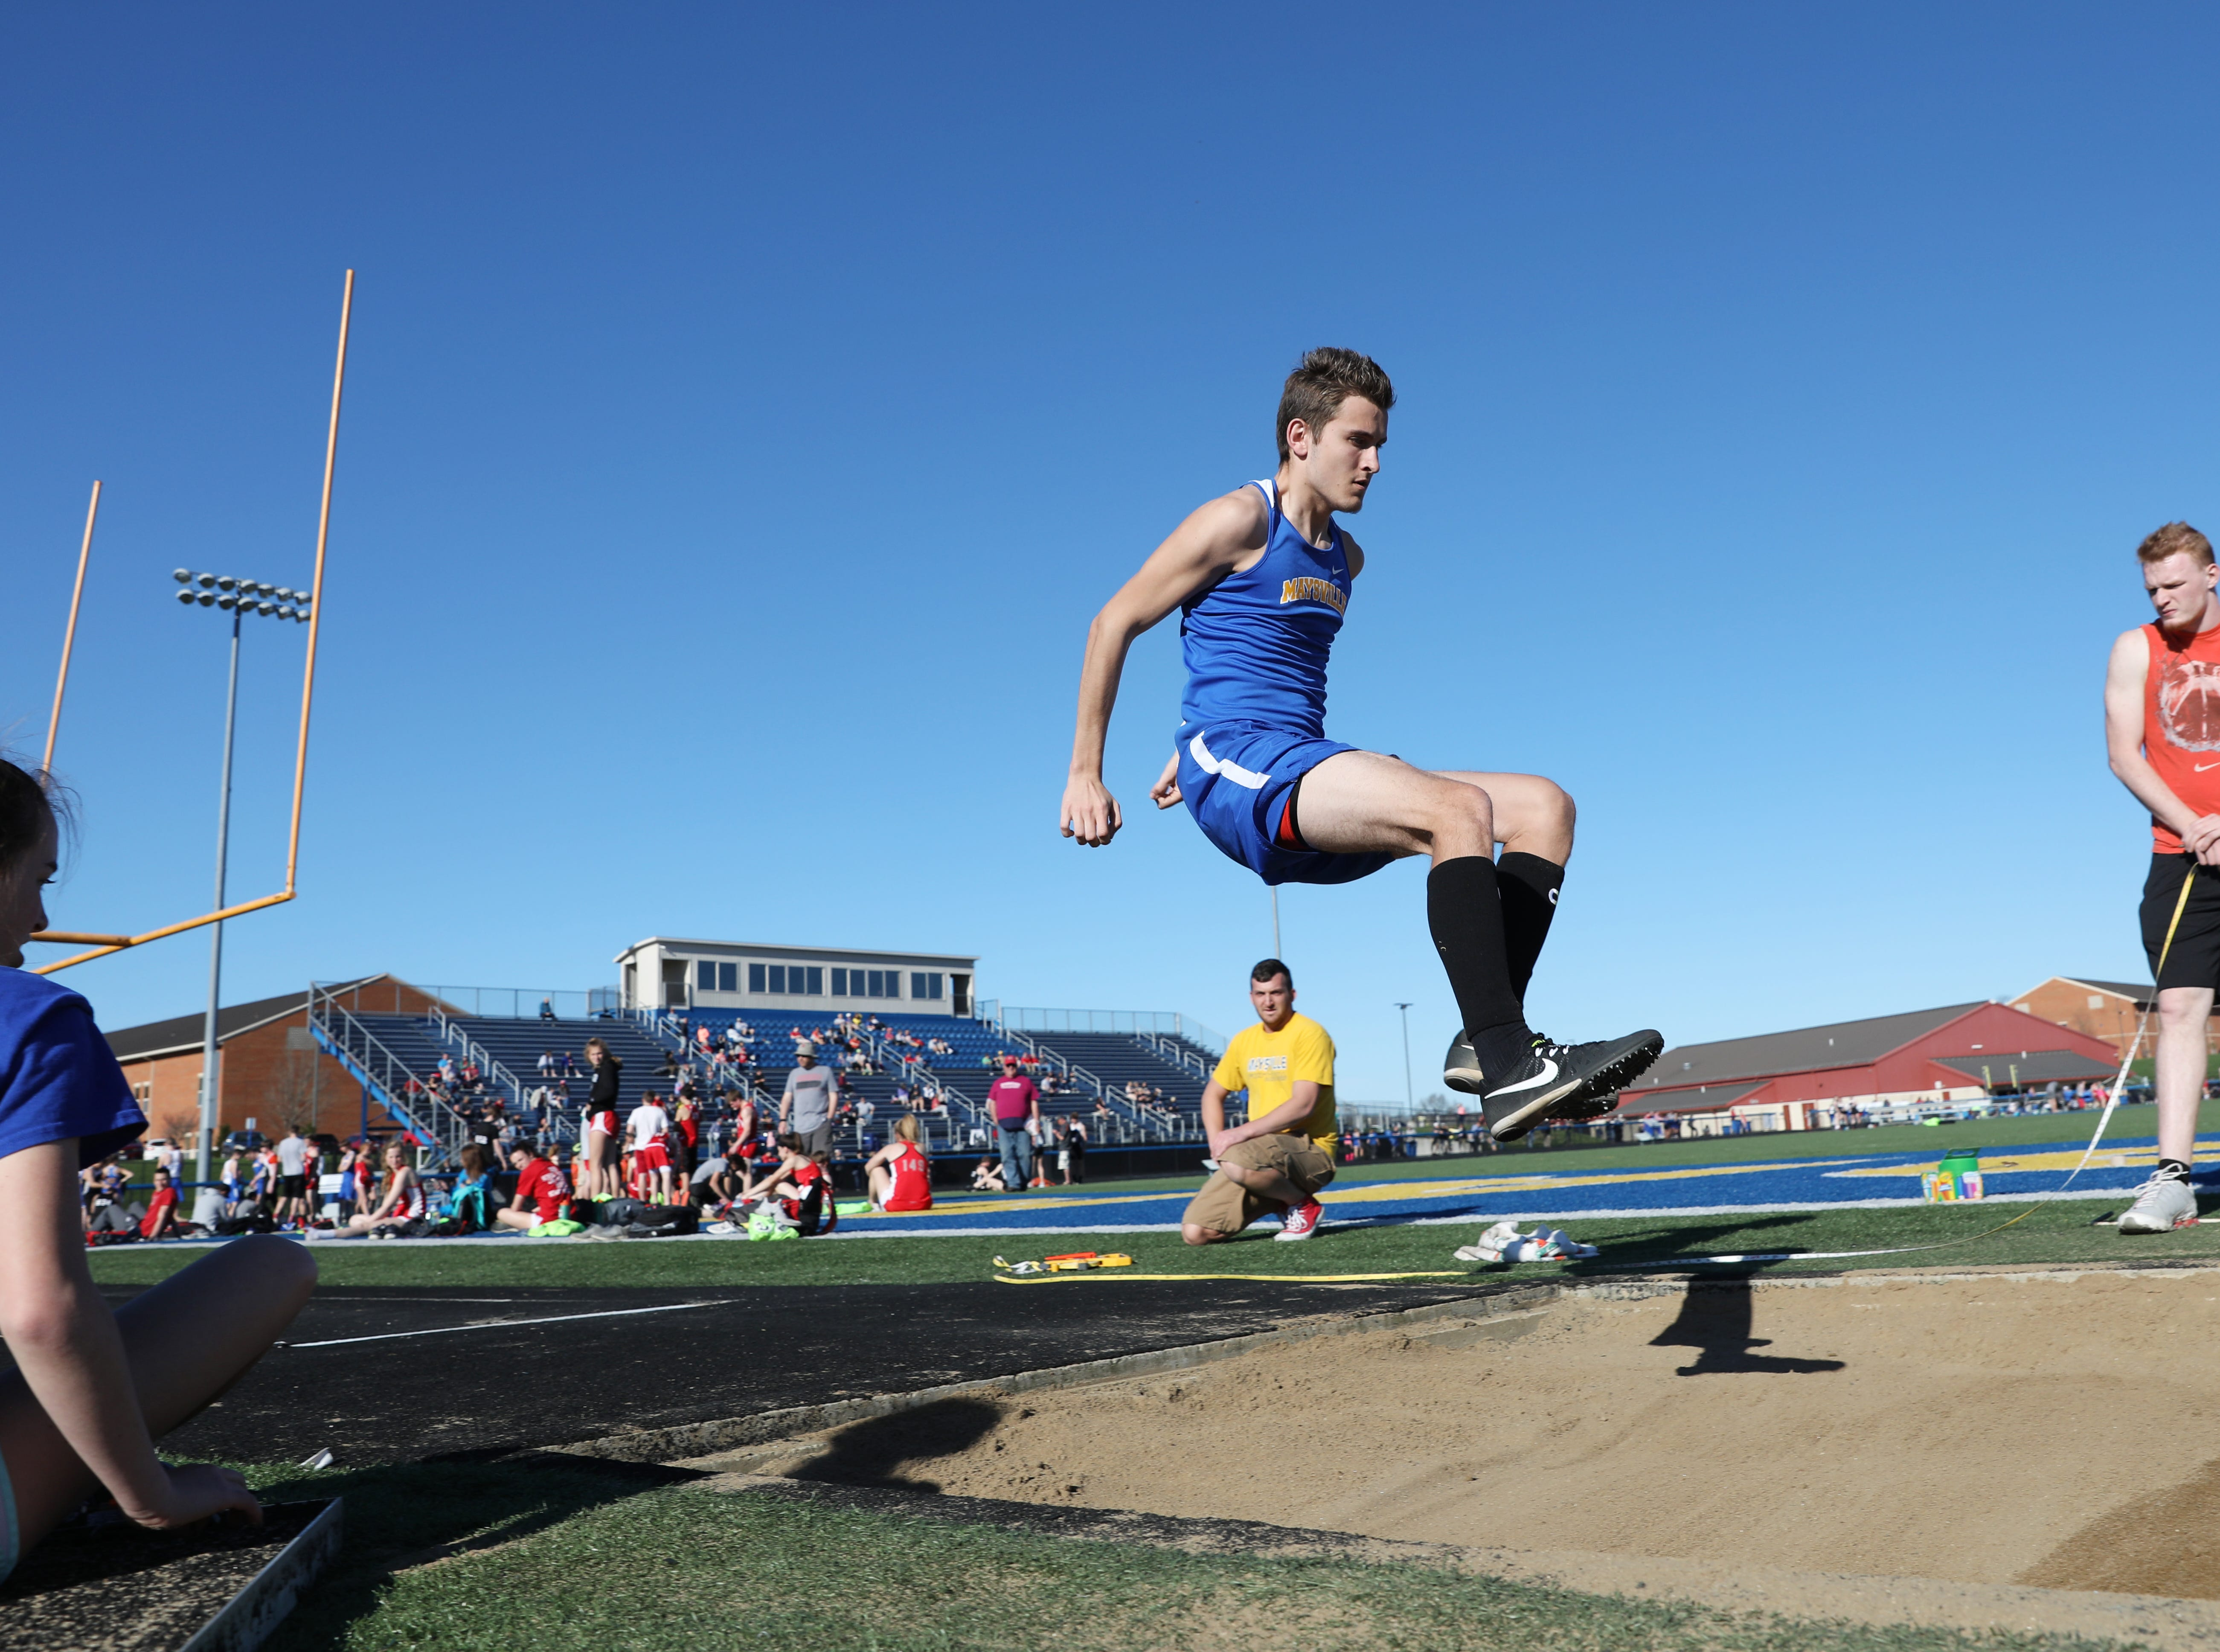 Maysville's Brodee Creeks competes in the long jump during Tuesday's tri-meet between Sheridan, New Lexington and host Maysville.